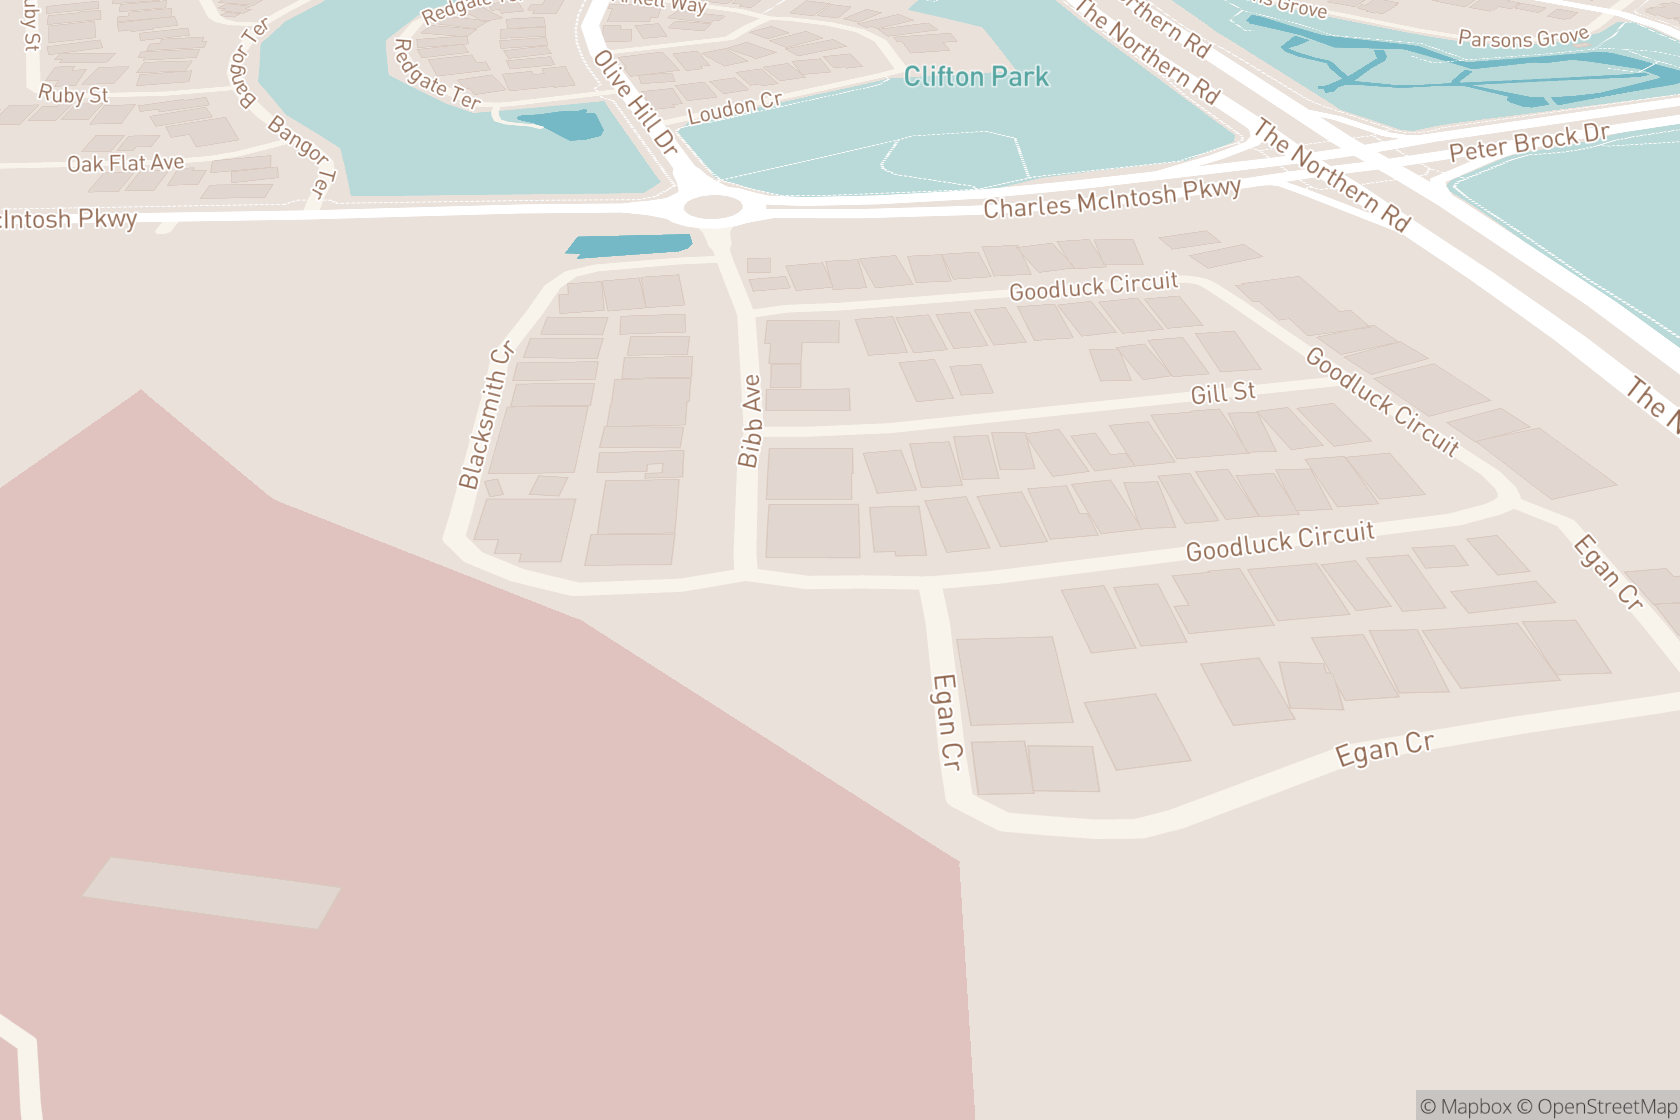 Cocoa Being map location